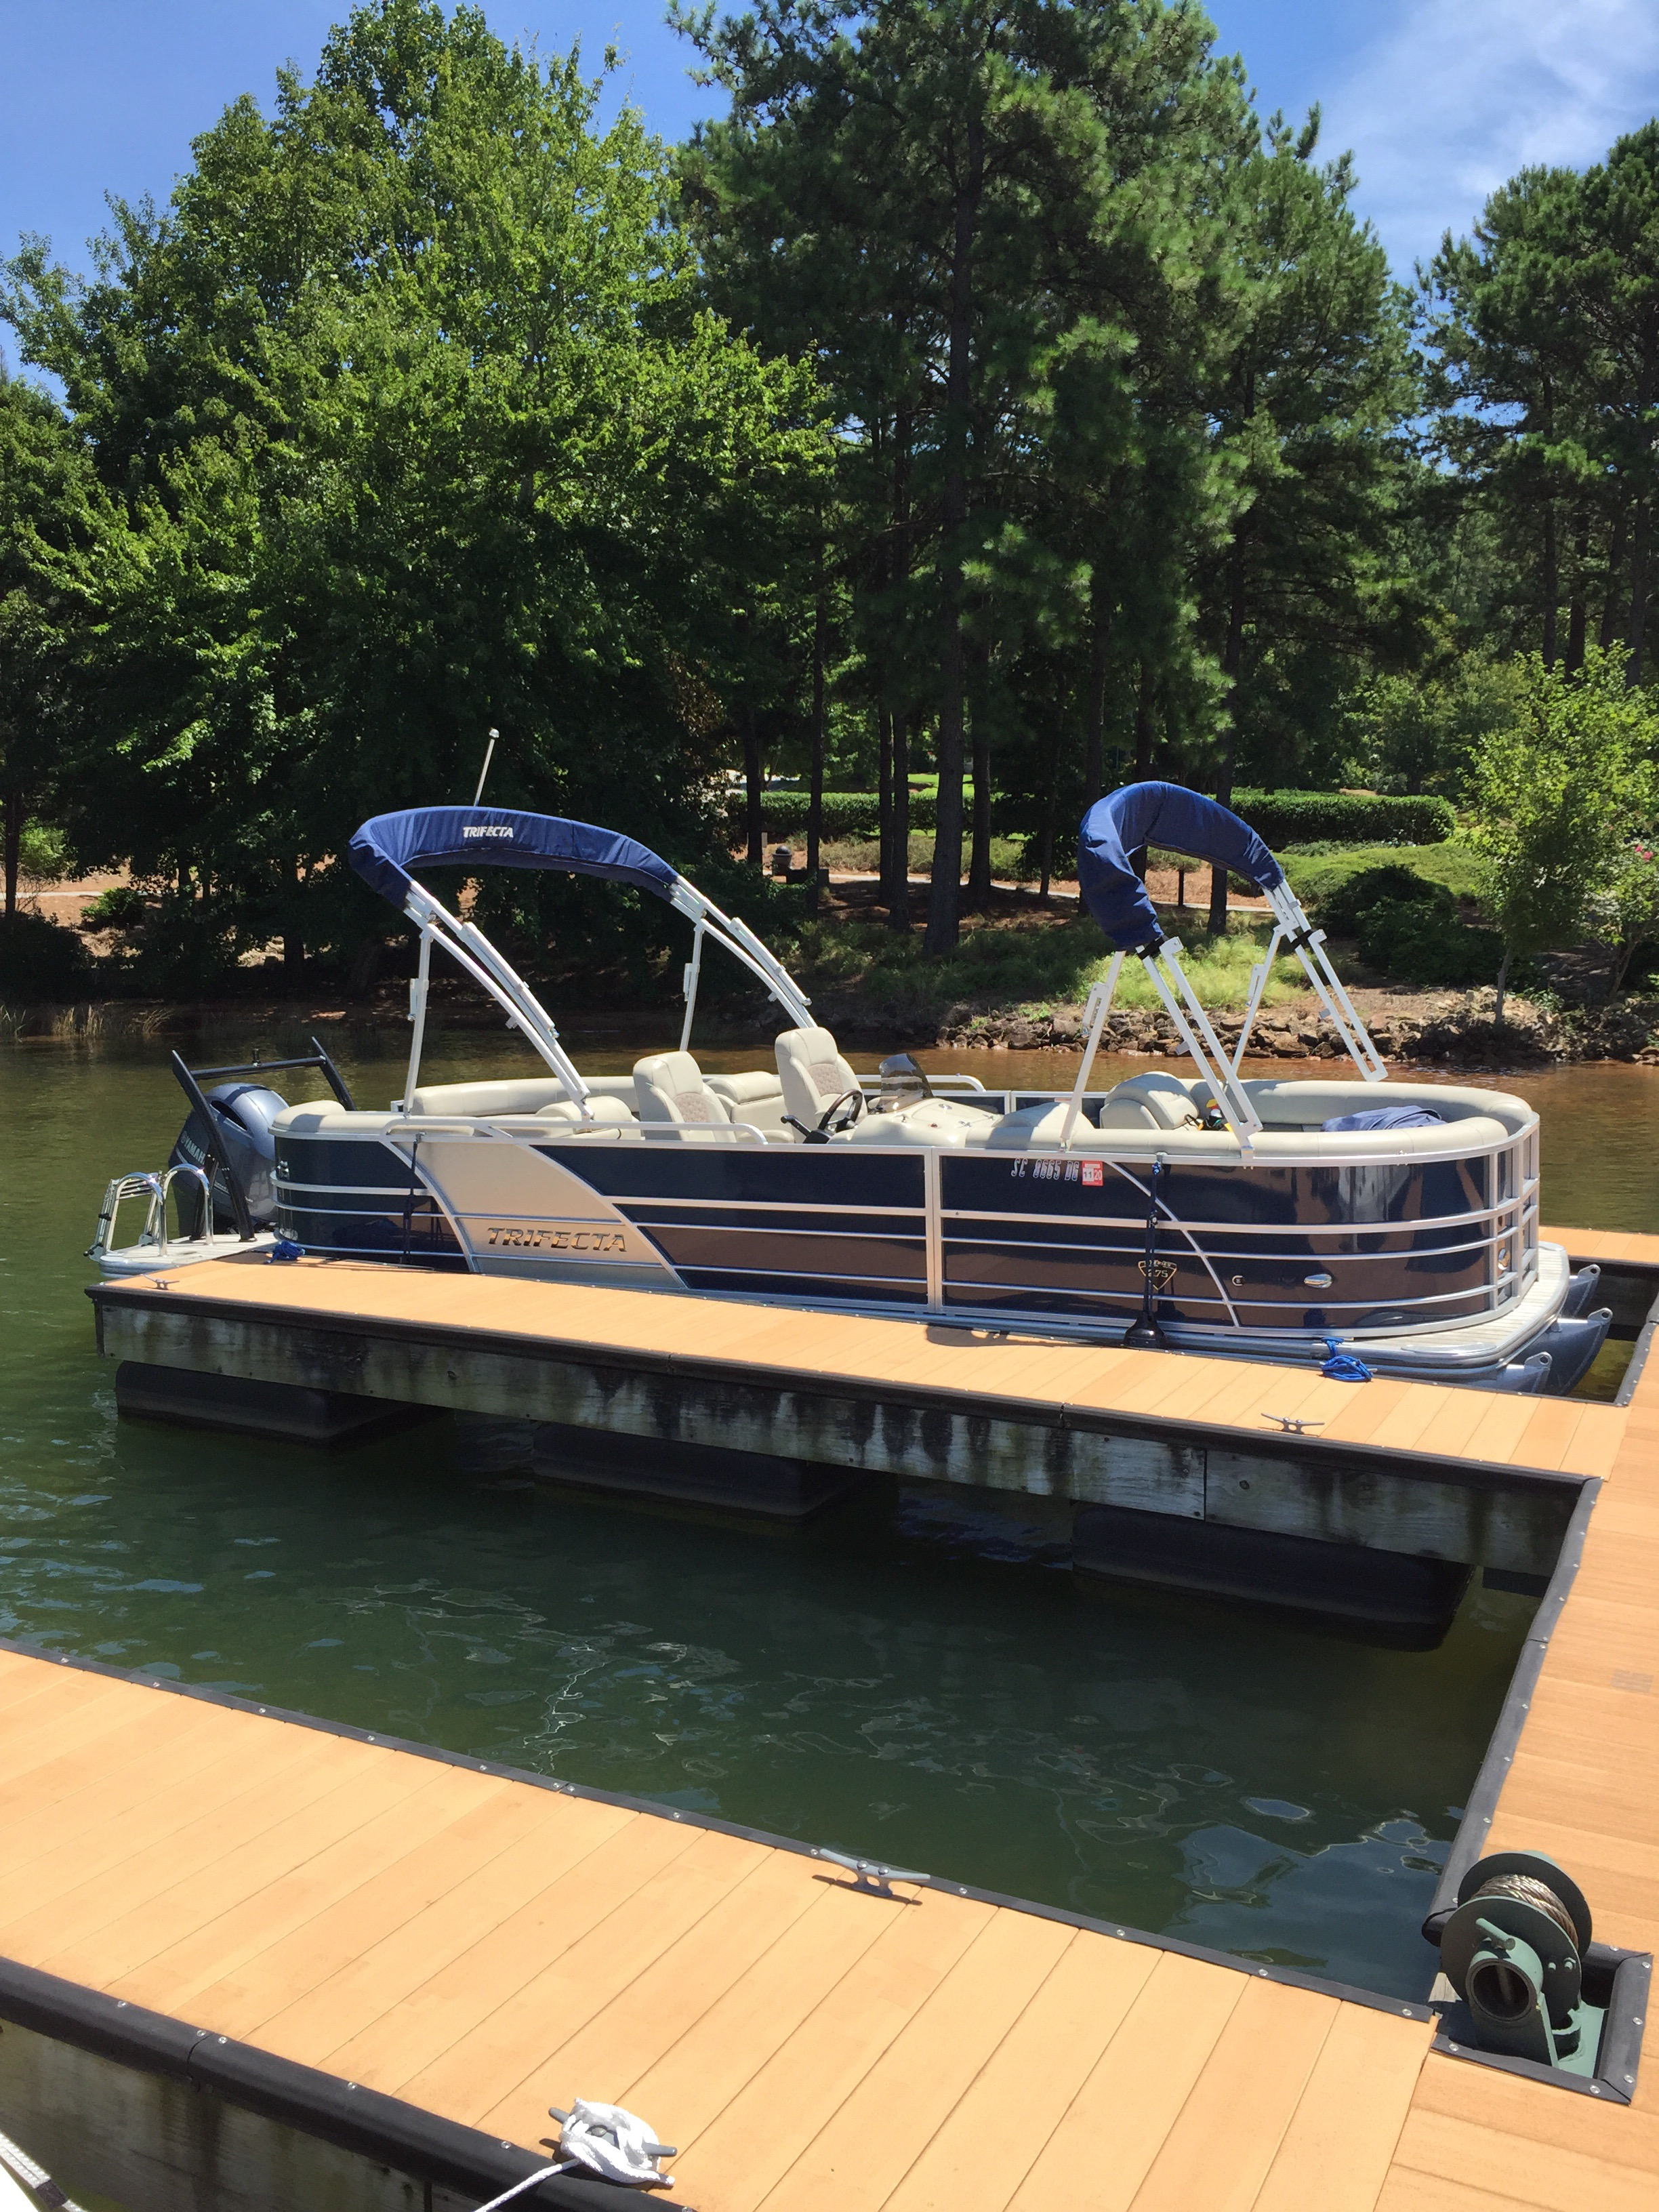 Aqua Patio Wet Bar: Pontoon Boats For Sale In United States